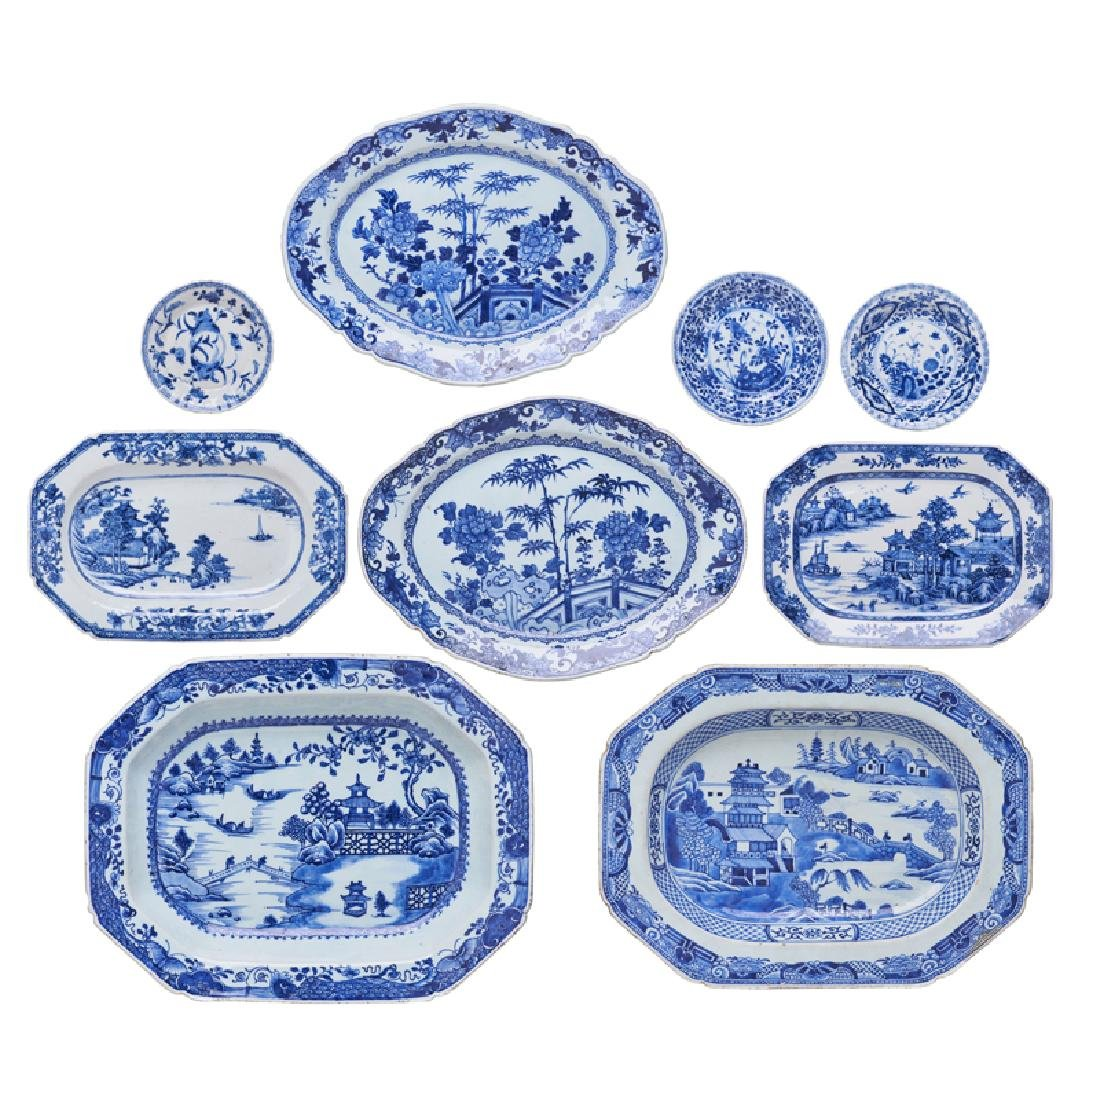 CHINESE EXPORT PORCELAIN TABLEWARE